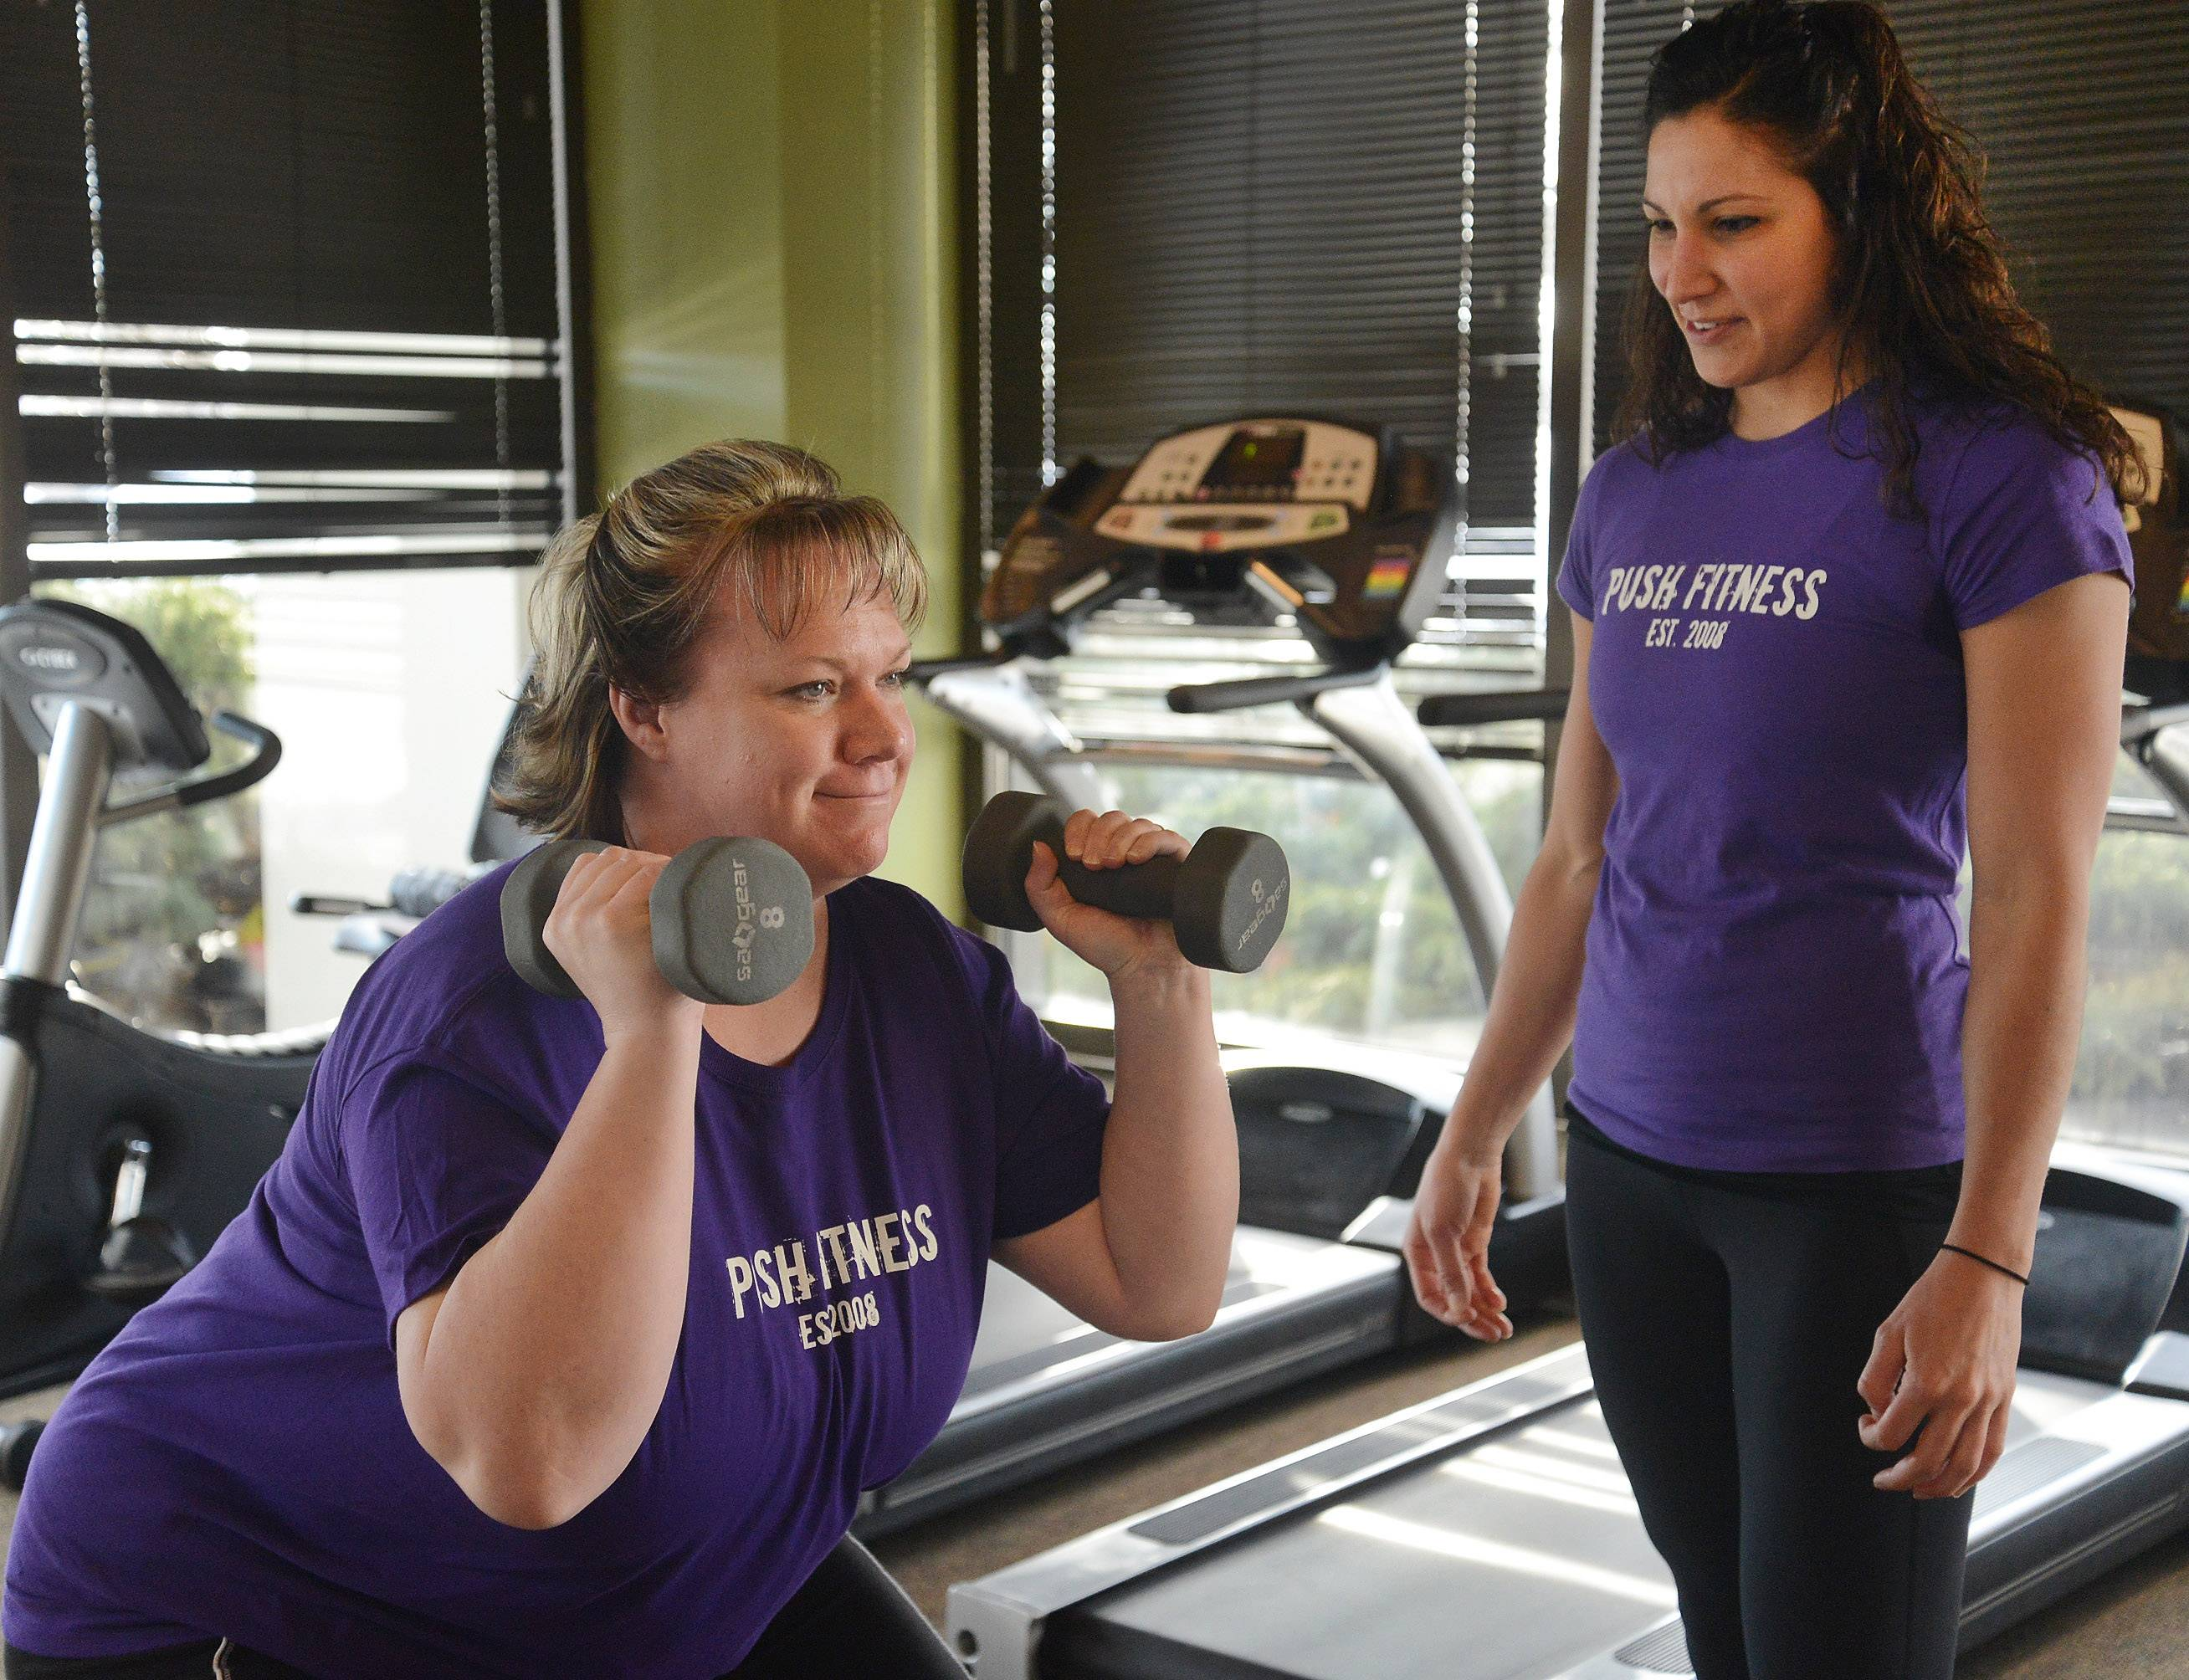 Bob Chwedyk/bchwedyk@dailyherald.comCheryl Siebert, left, works out with her trainer Lindsay Vigna. Before shots of the Fittest Loser contestants and their trainers.